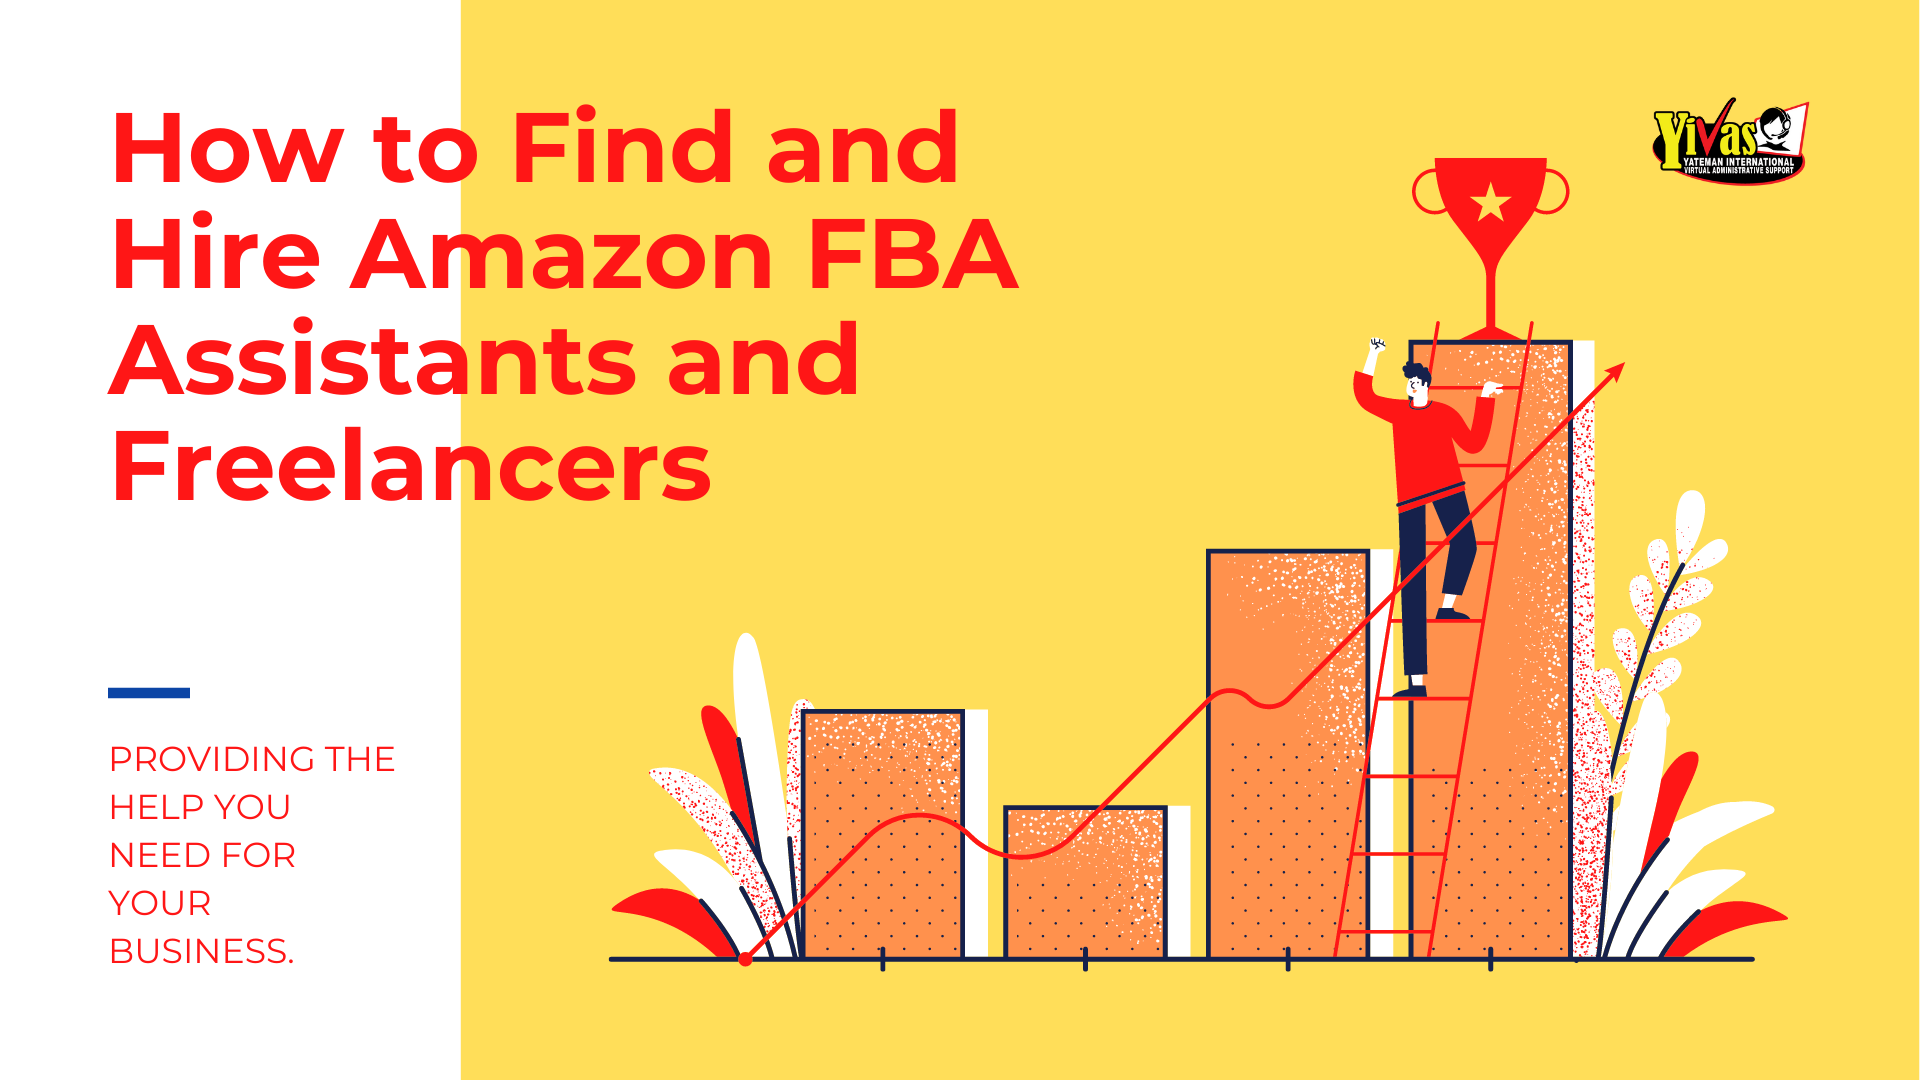 How to Find and Hire Amazon FBA Assistants and Freelancers